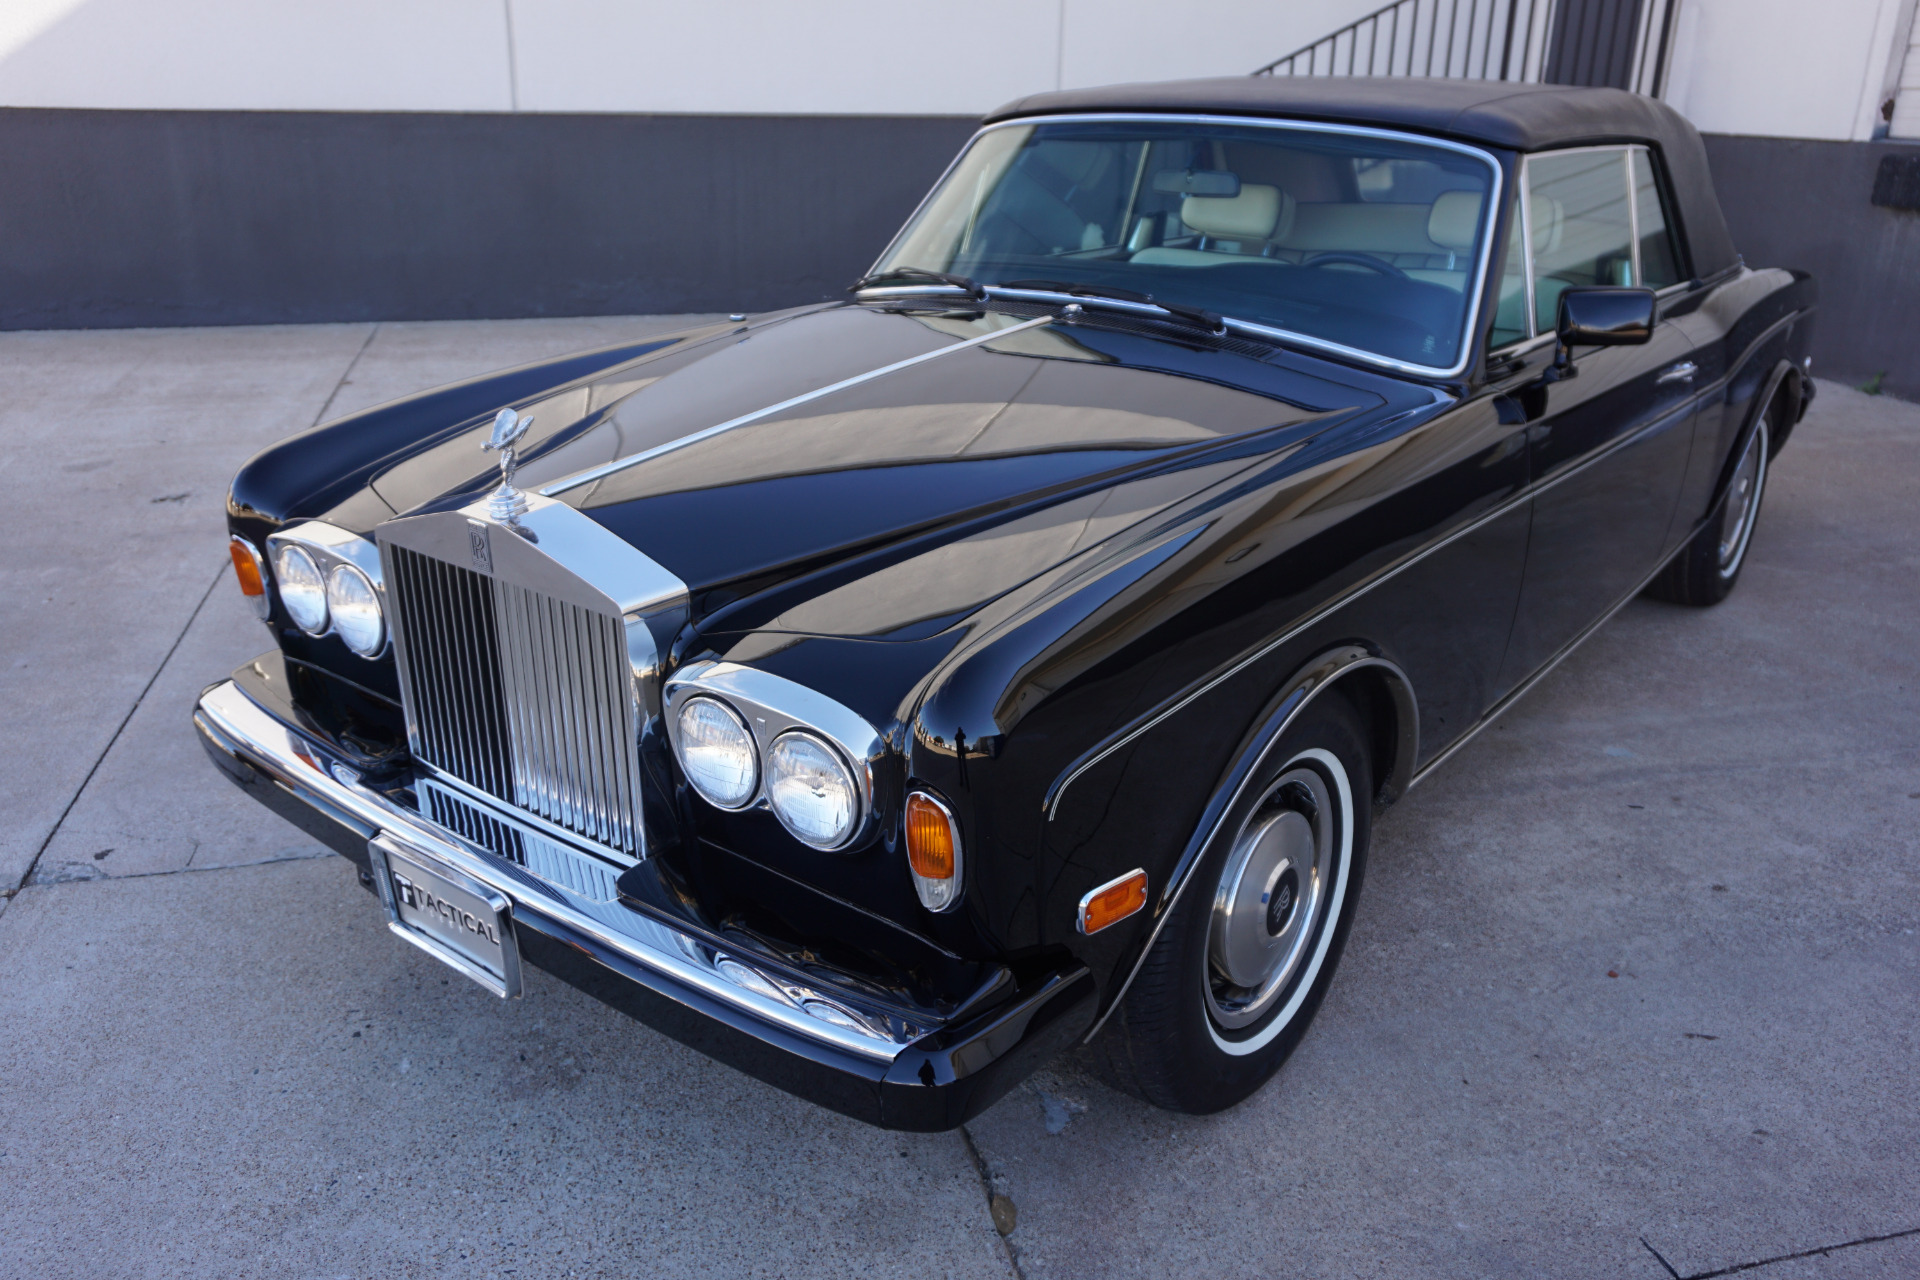 Used 1985 Rolls Royce Corniche For Sale 45 900 Tactical Fleet Stock Tf1087